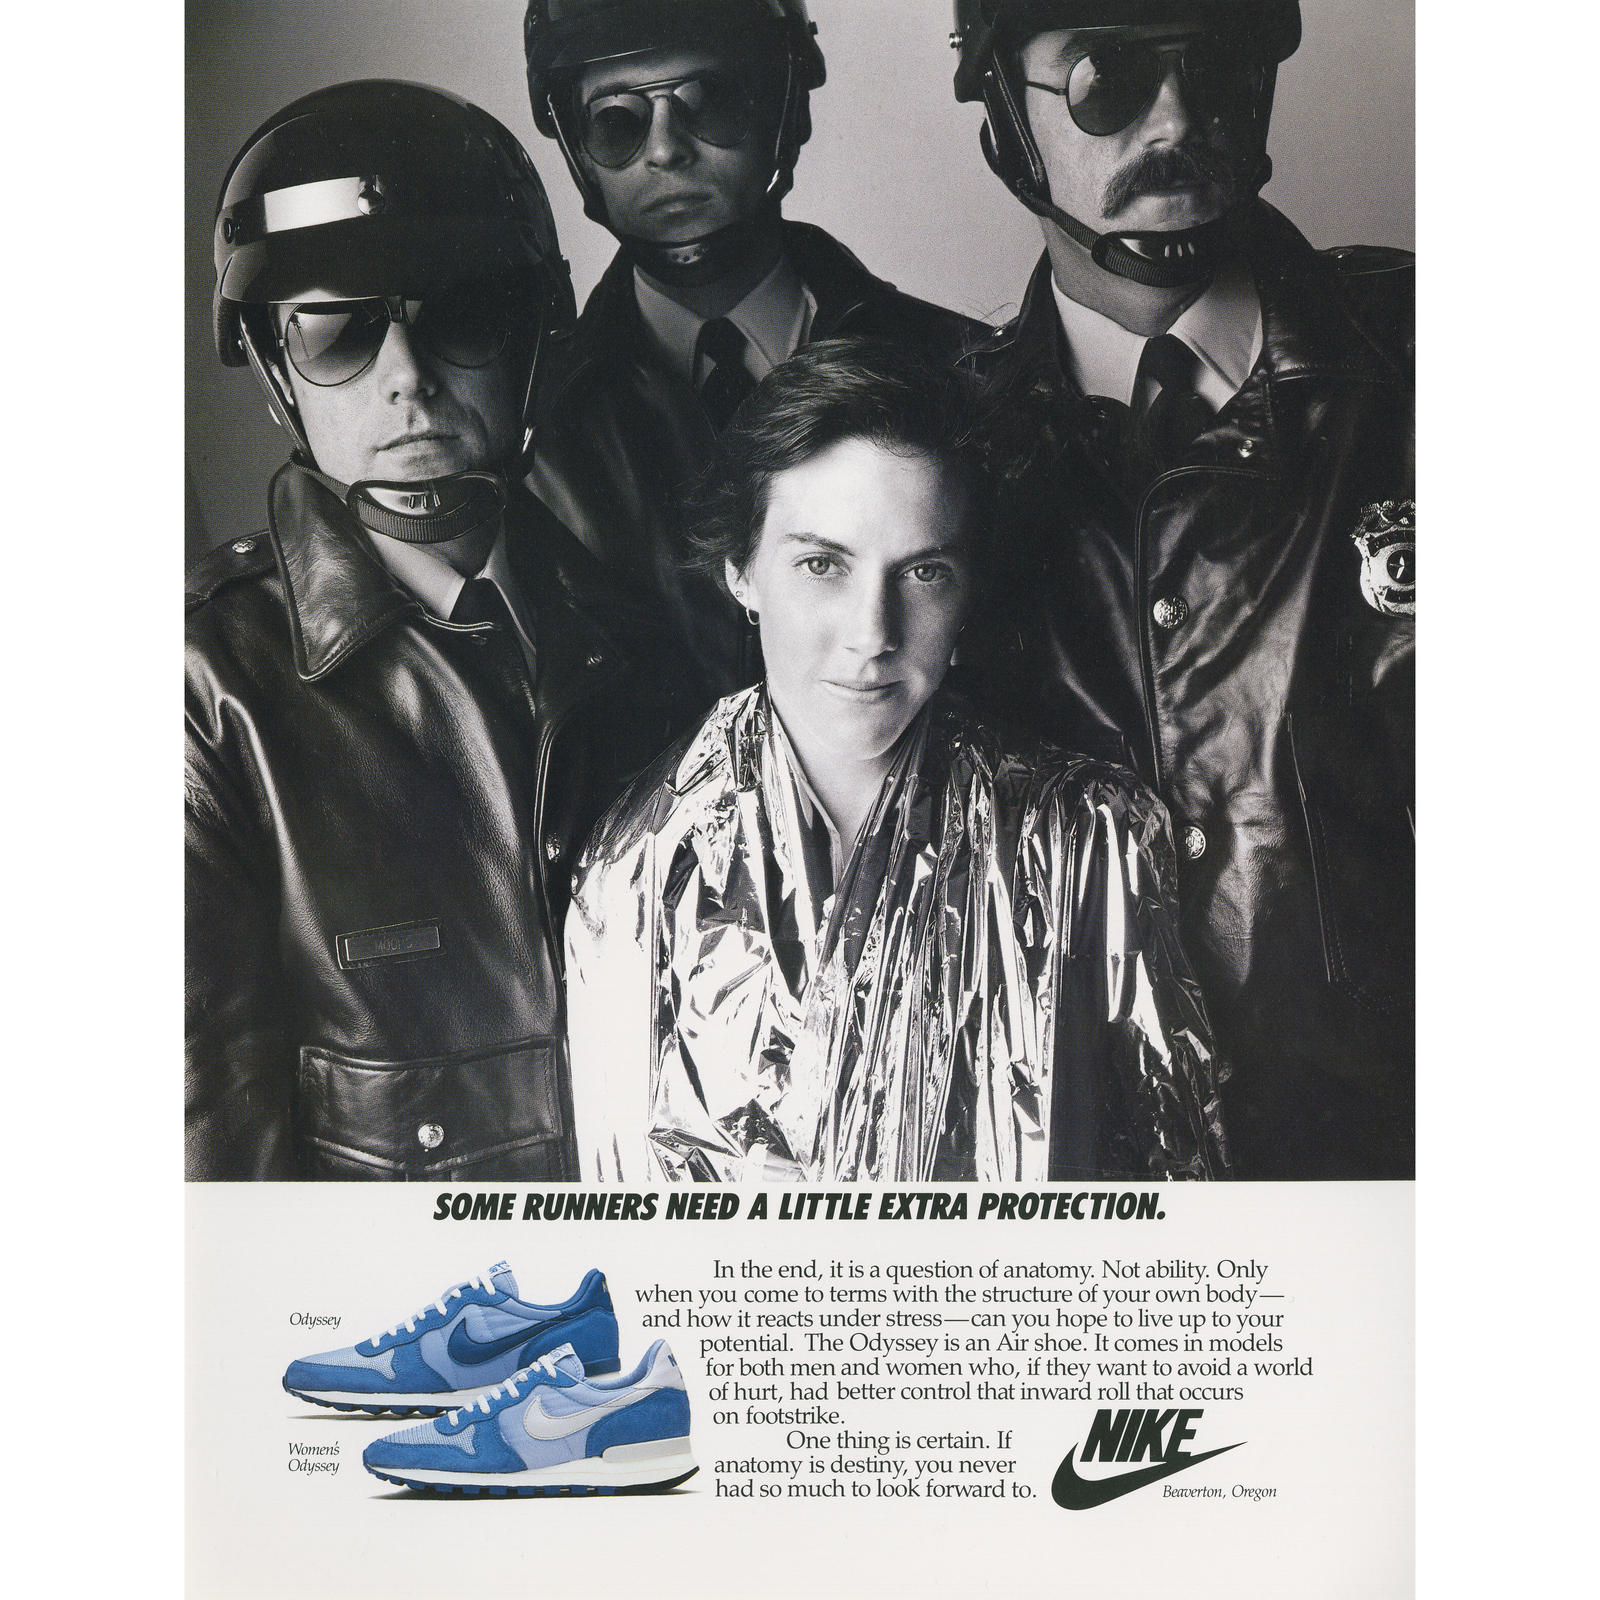 Nike Puts Women Front and Center for 40 Years and Counting